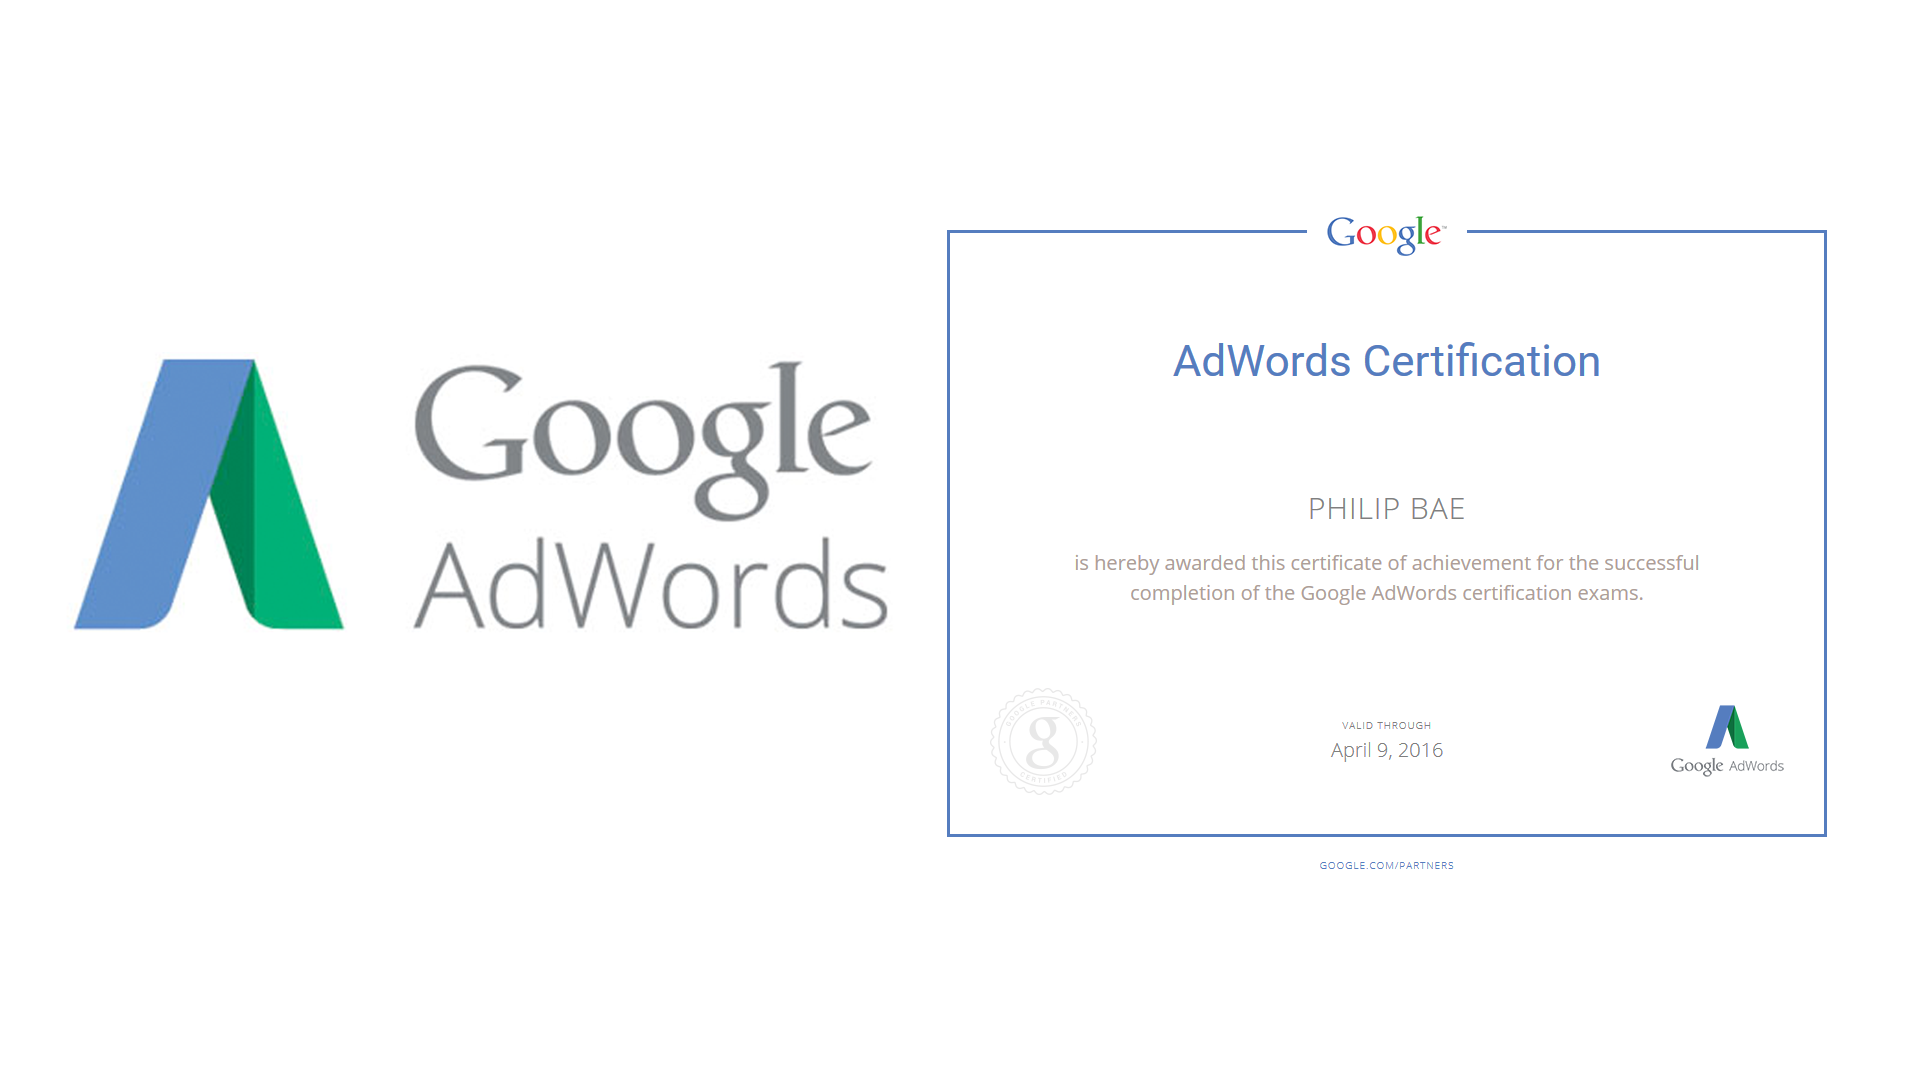 Best Study Guide To Prepare For Google Adwords Certification Exam